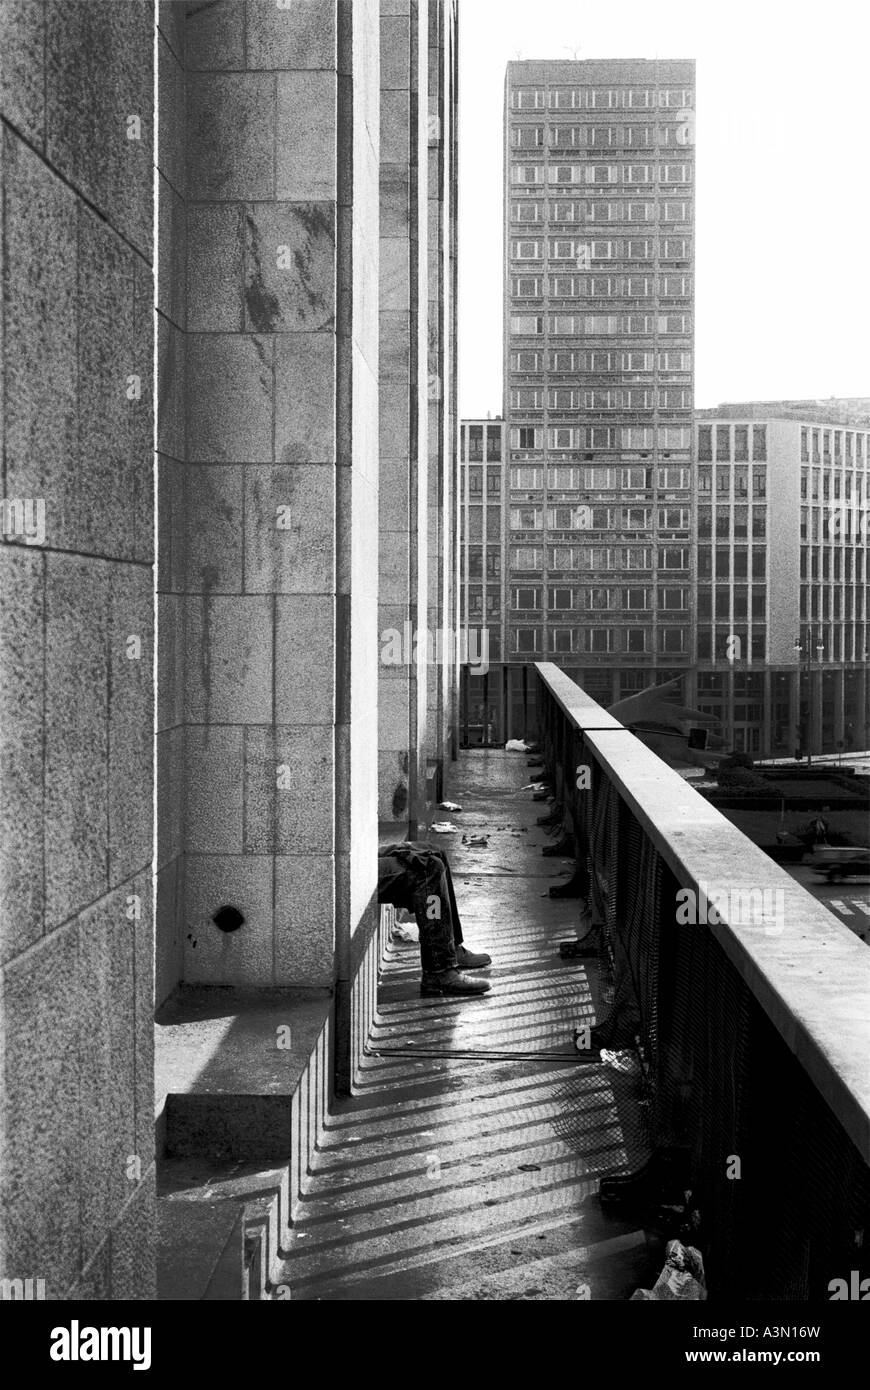 Milan, Italy. A man seated between skyscrapers - Stock Image